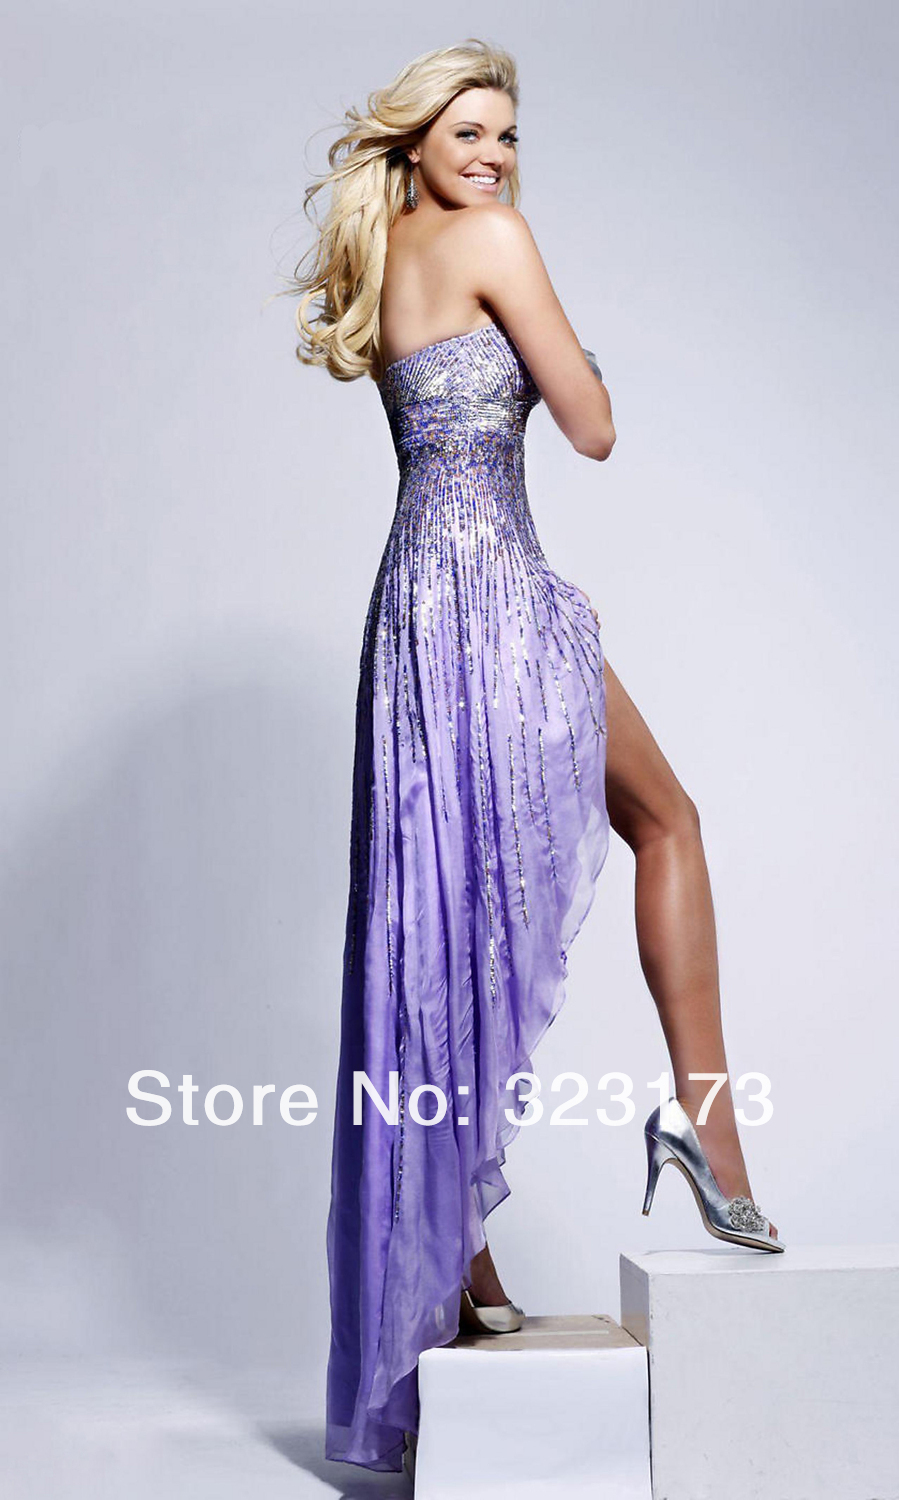 White Lavender Royal Blue Bling Sequin Prom Dress High Low Hem.  PromGirl-549214309.jpg PromGirl-549214310.jpg ... 3f3d449e8b65